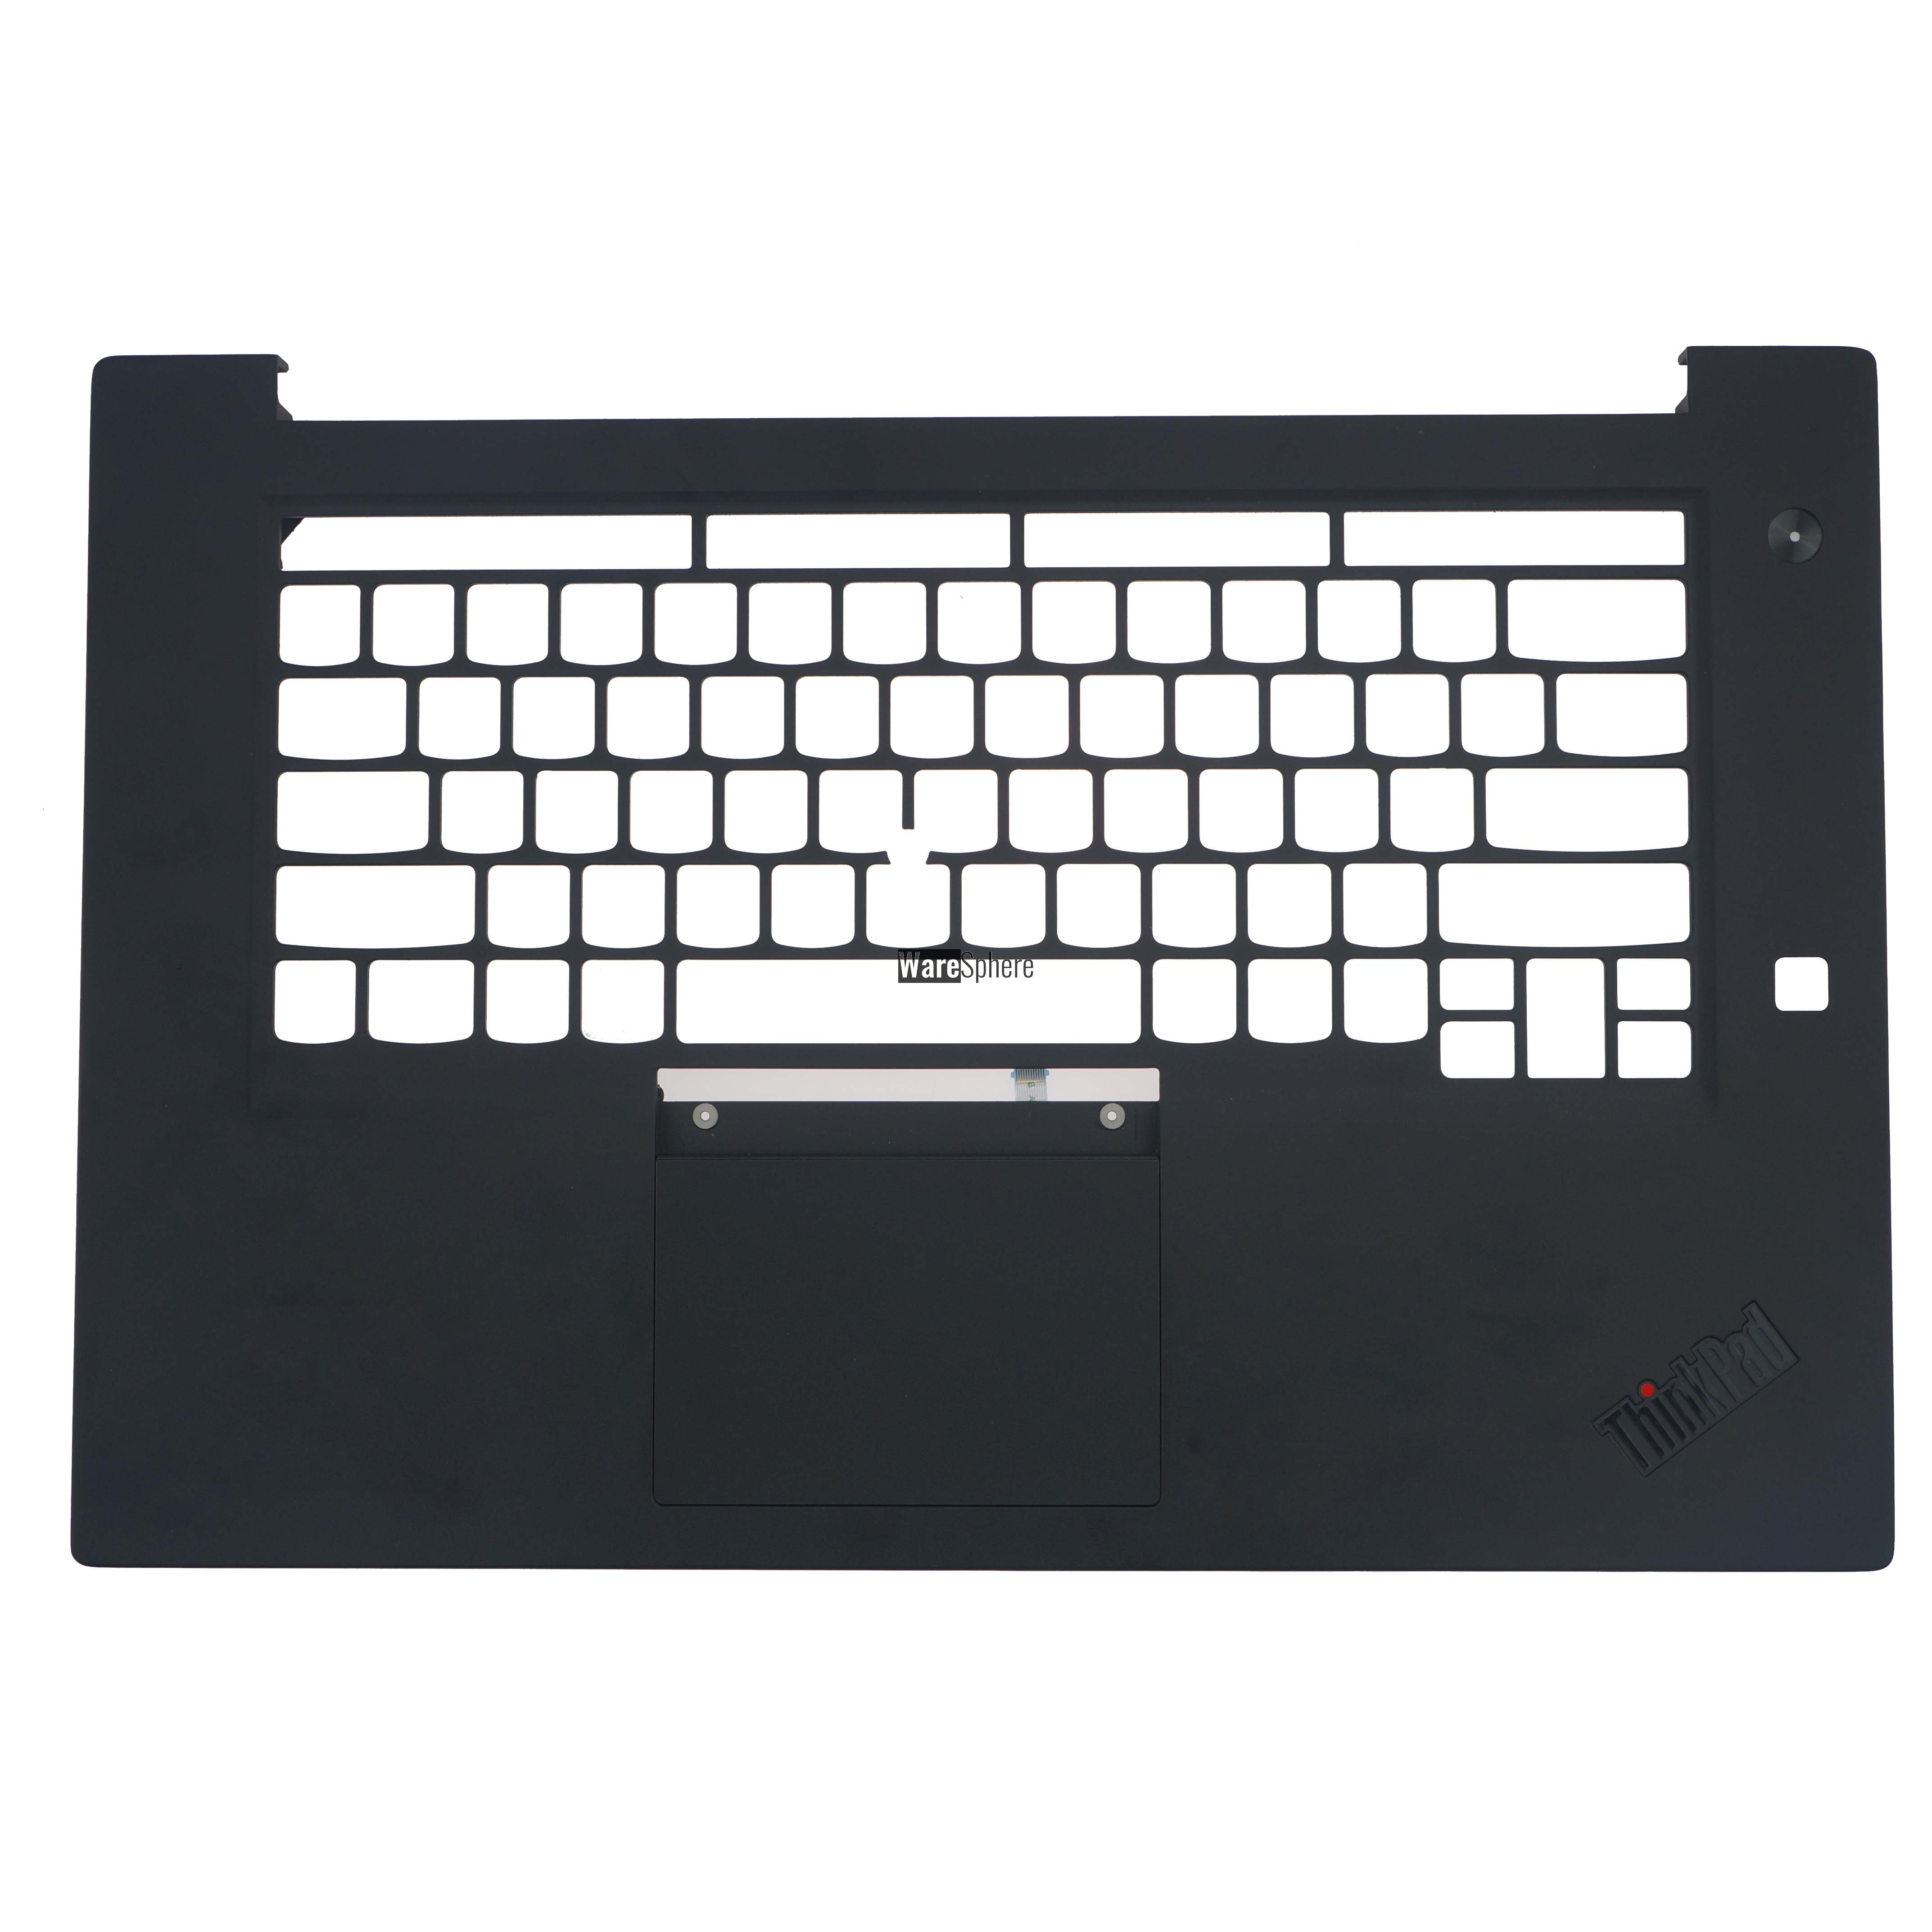 Top Cover Upper Case for Lenovo ThinkPad x1 extreme P1 4600GU030011 Palmrest With Touchpad Black